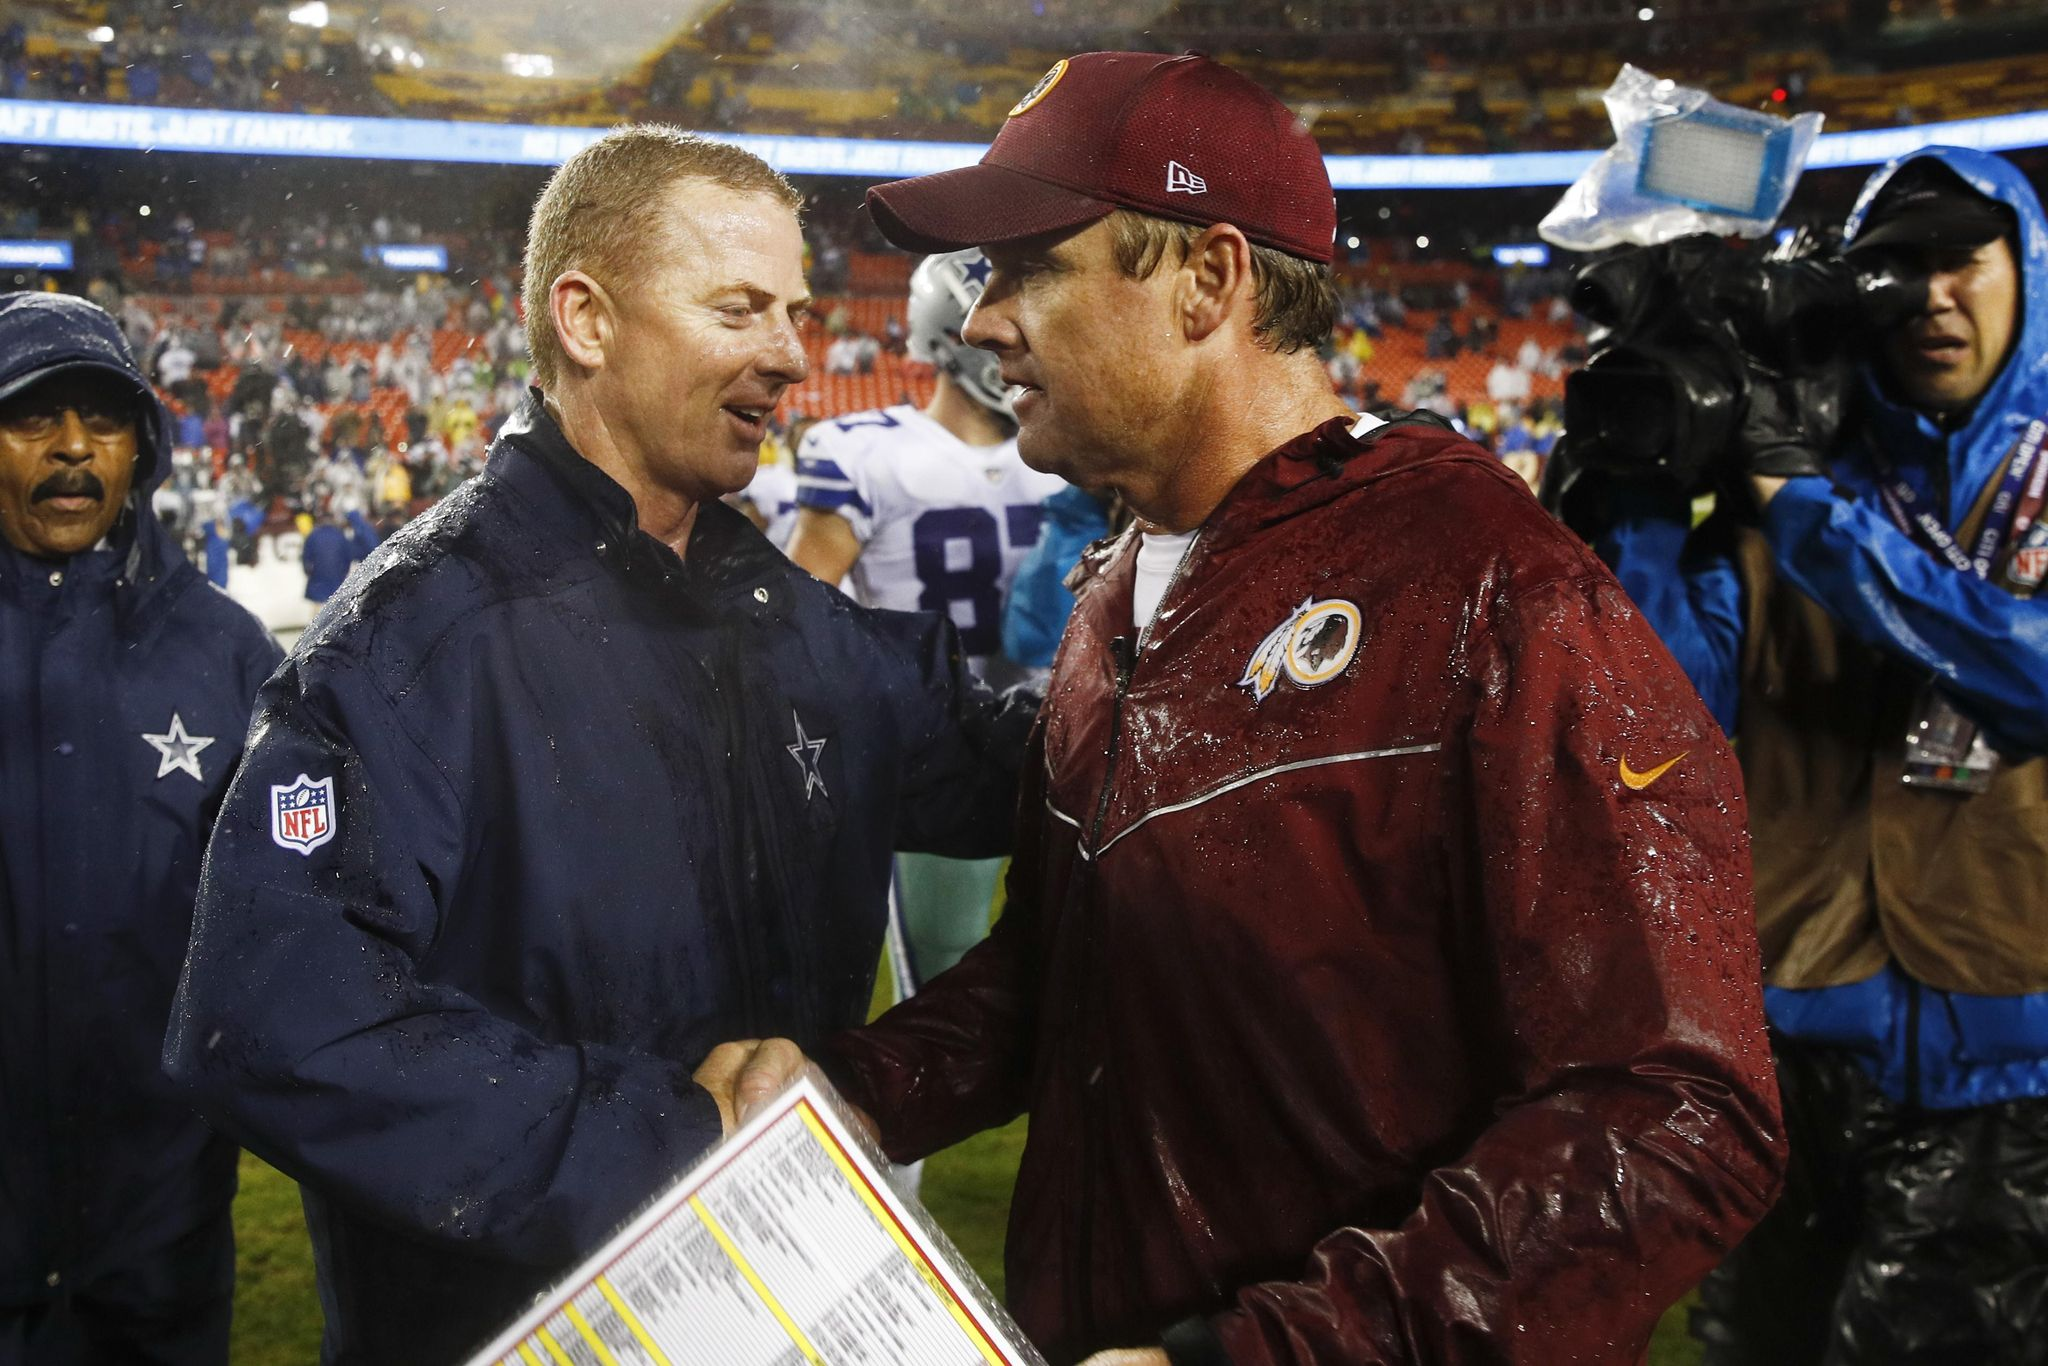 So-so Cowboys, Redskins trying to stop alternating W's, L's - Washington Times